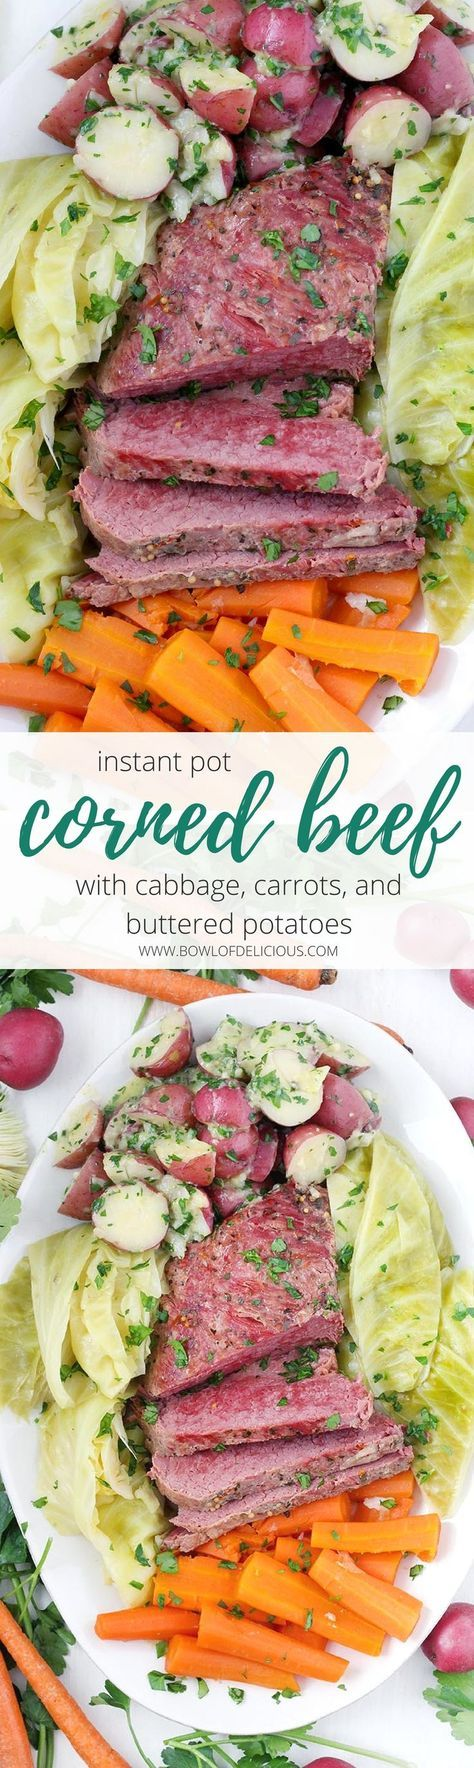 Celebrate St. Patrick's day with this recipe for Instant Pot Corned Beef with Cabbage, Carrots, and Buttered Potatoes! It takes half the amount of time as on the stovetop when you use a pressure cooker. The best part is the potatoes, smothered in melted butter and fresh parsley, and the corned beef is perfectly cooked to a fall-apart texture. #CornedBeef #InstantPot #StPatricksDay #Paleo #Whole30 #LowCarb